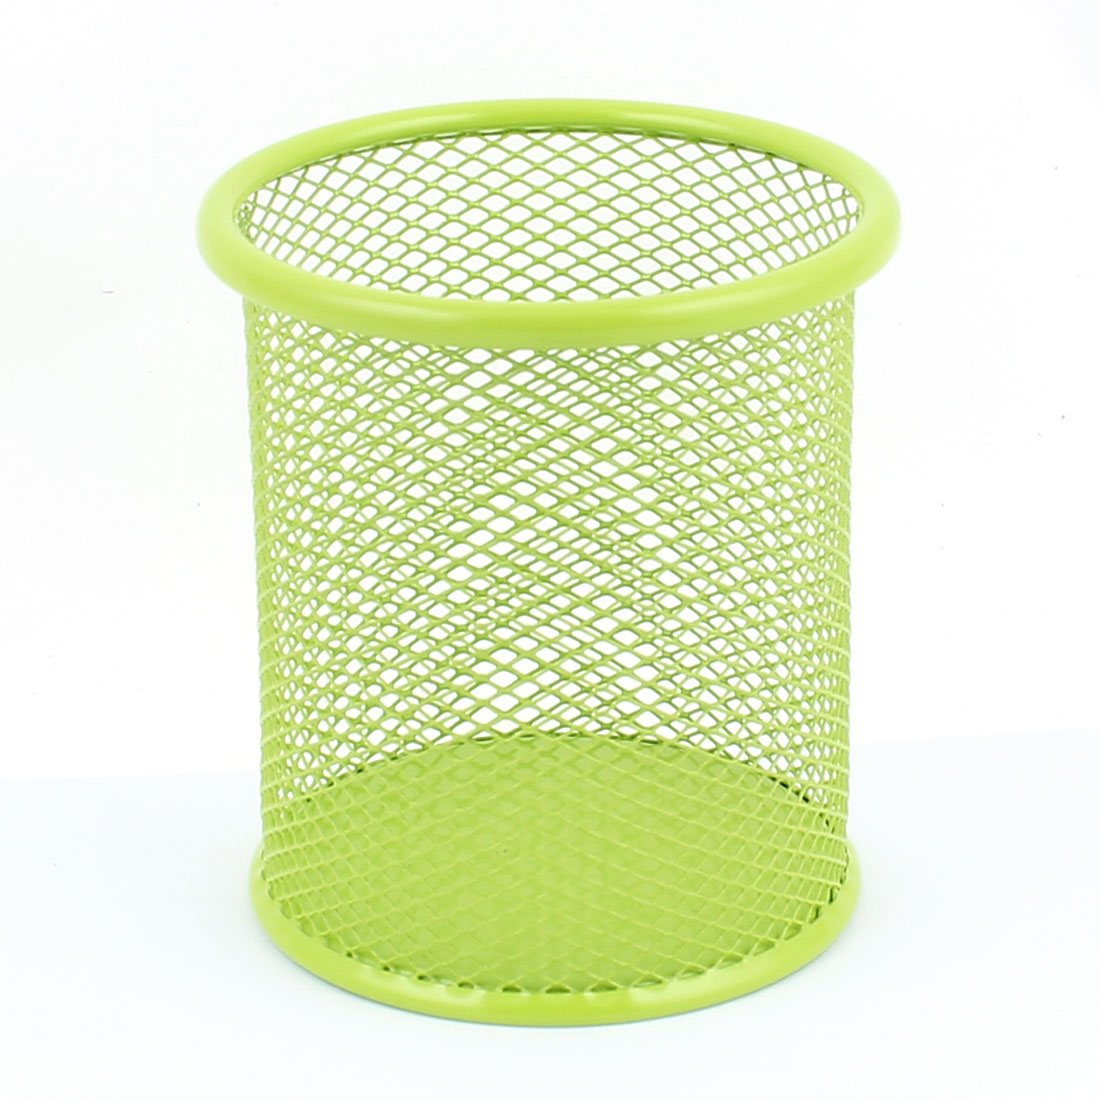 Office School Metal Mesh Style Pen Pencil Ruler Holder Container Storage Organizer Green